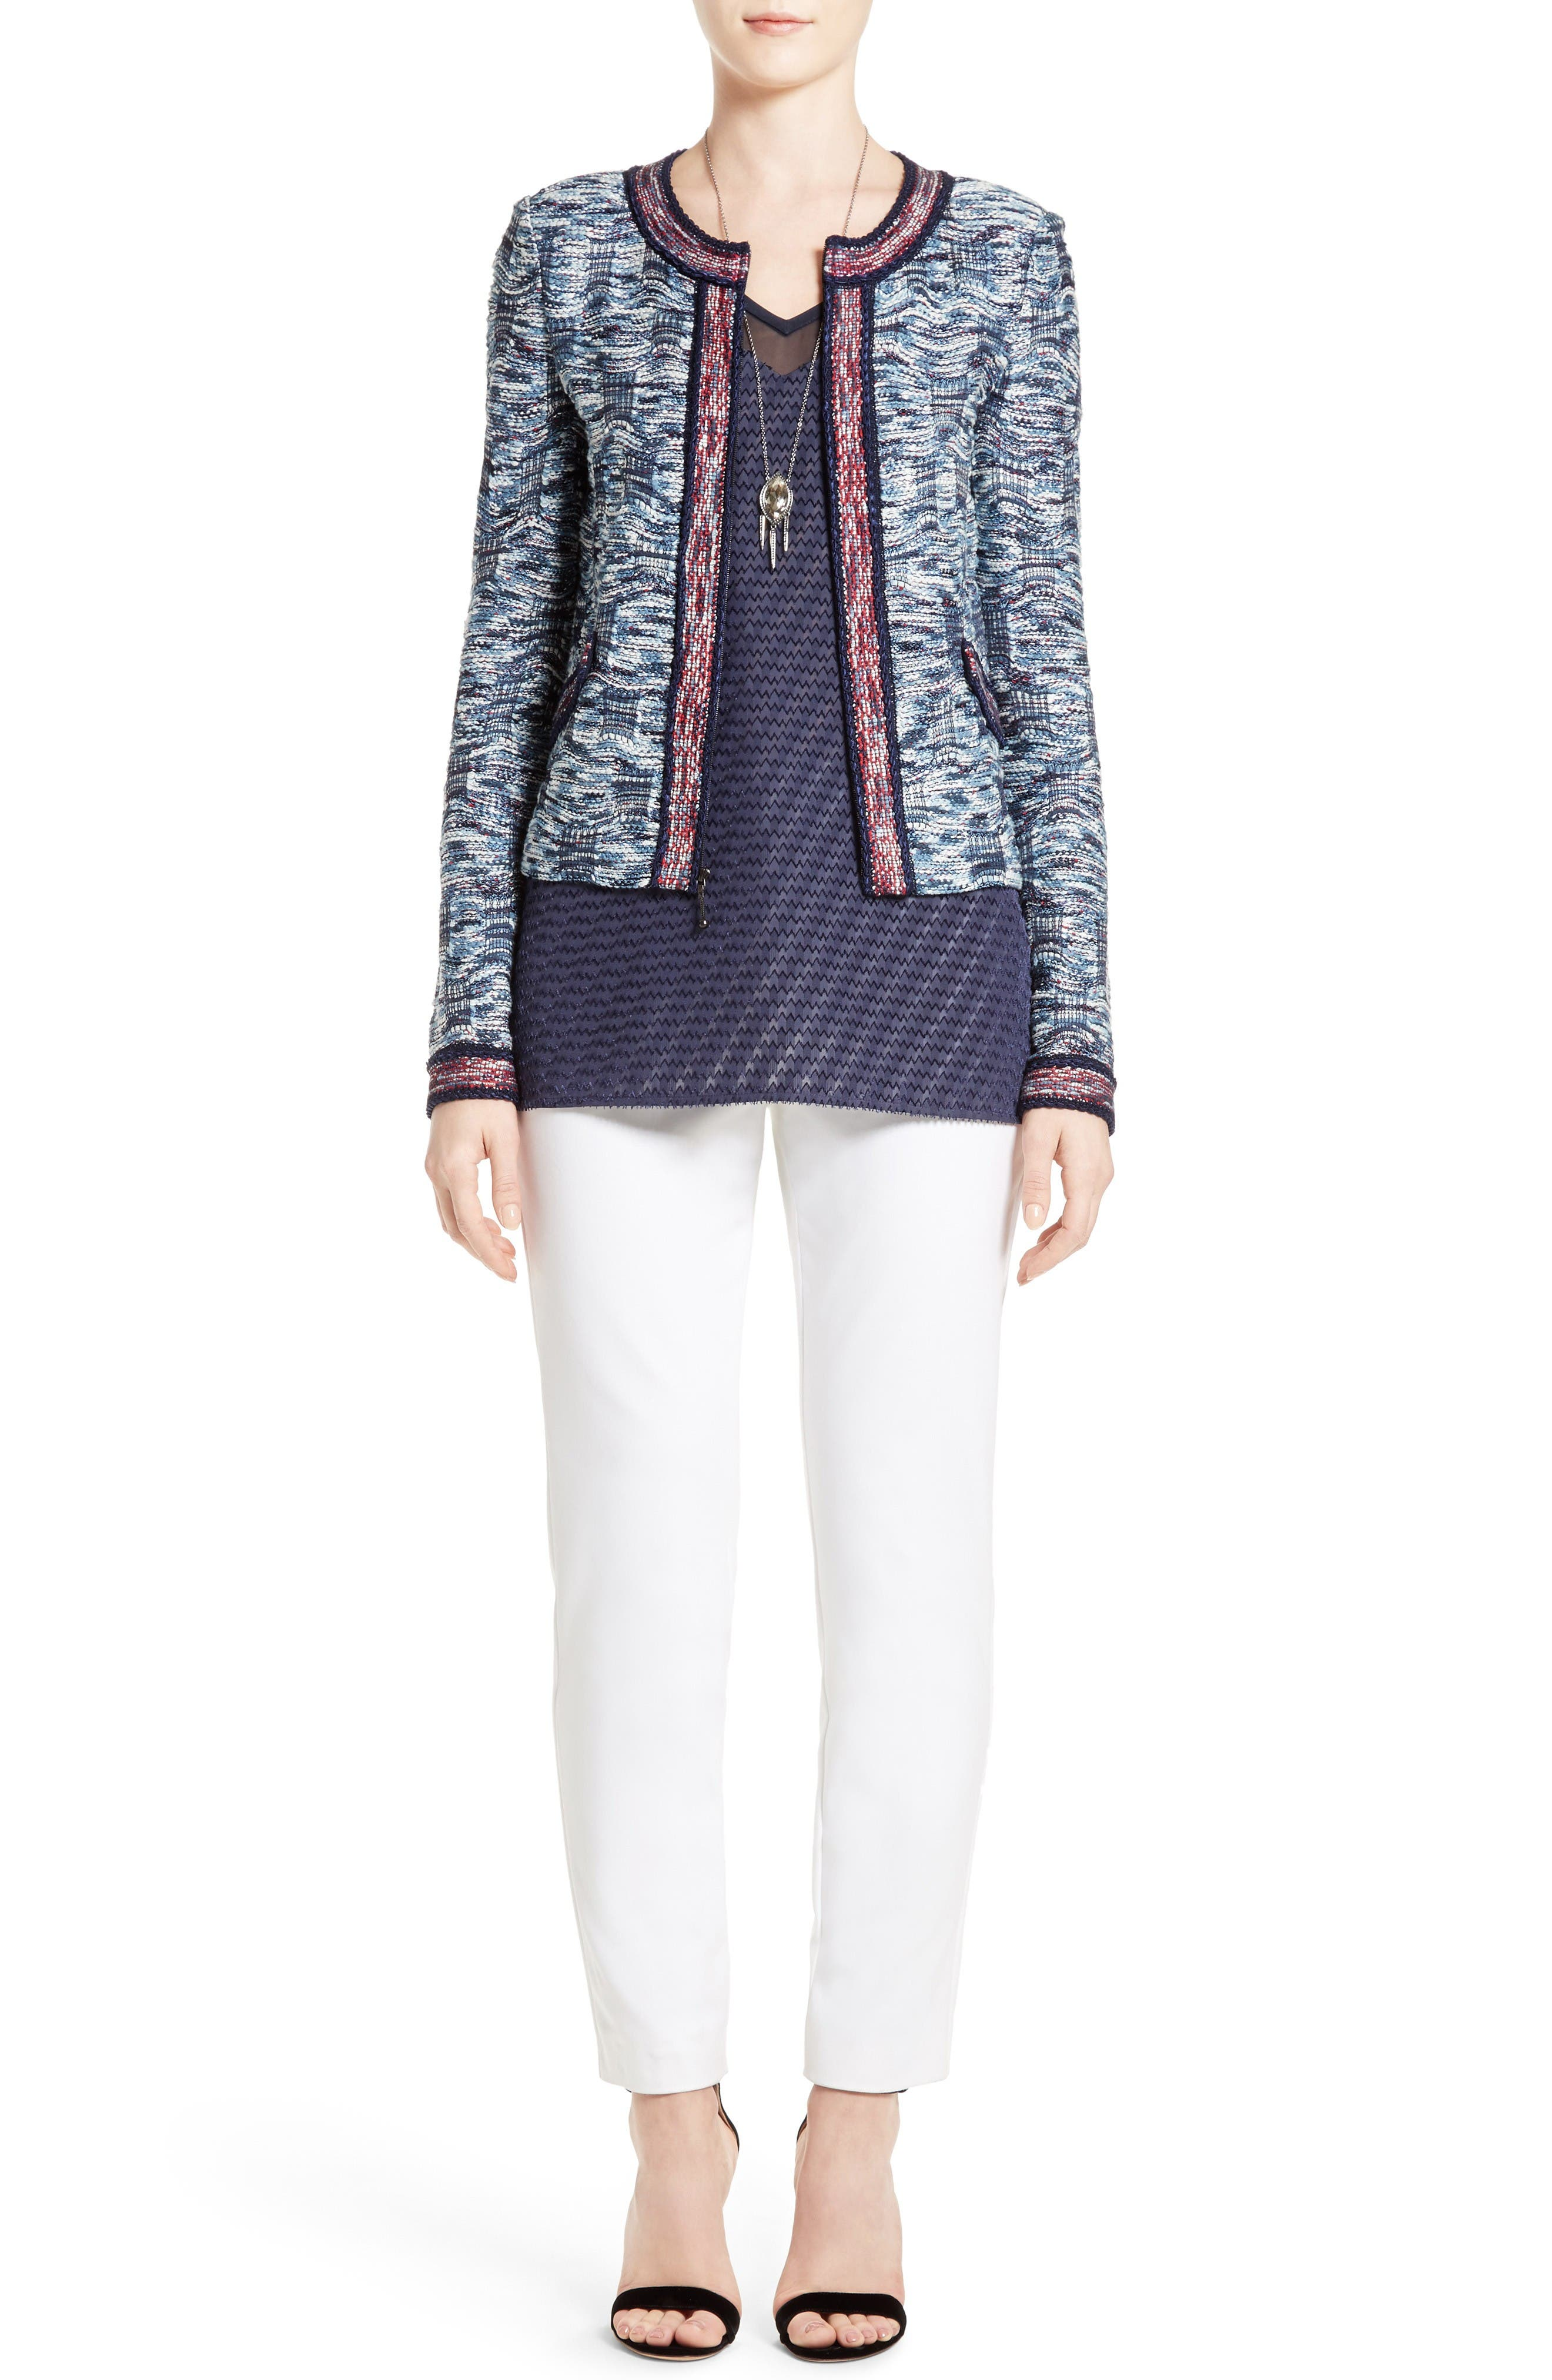 St. John Collection Jacket, Shell & Pants Outfit with Accessories